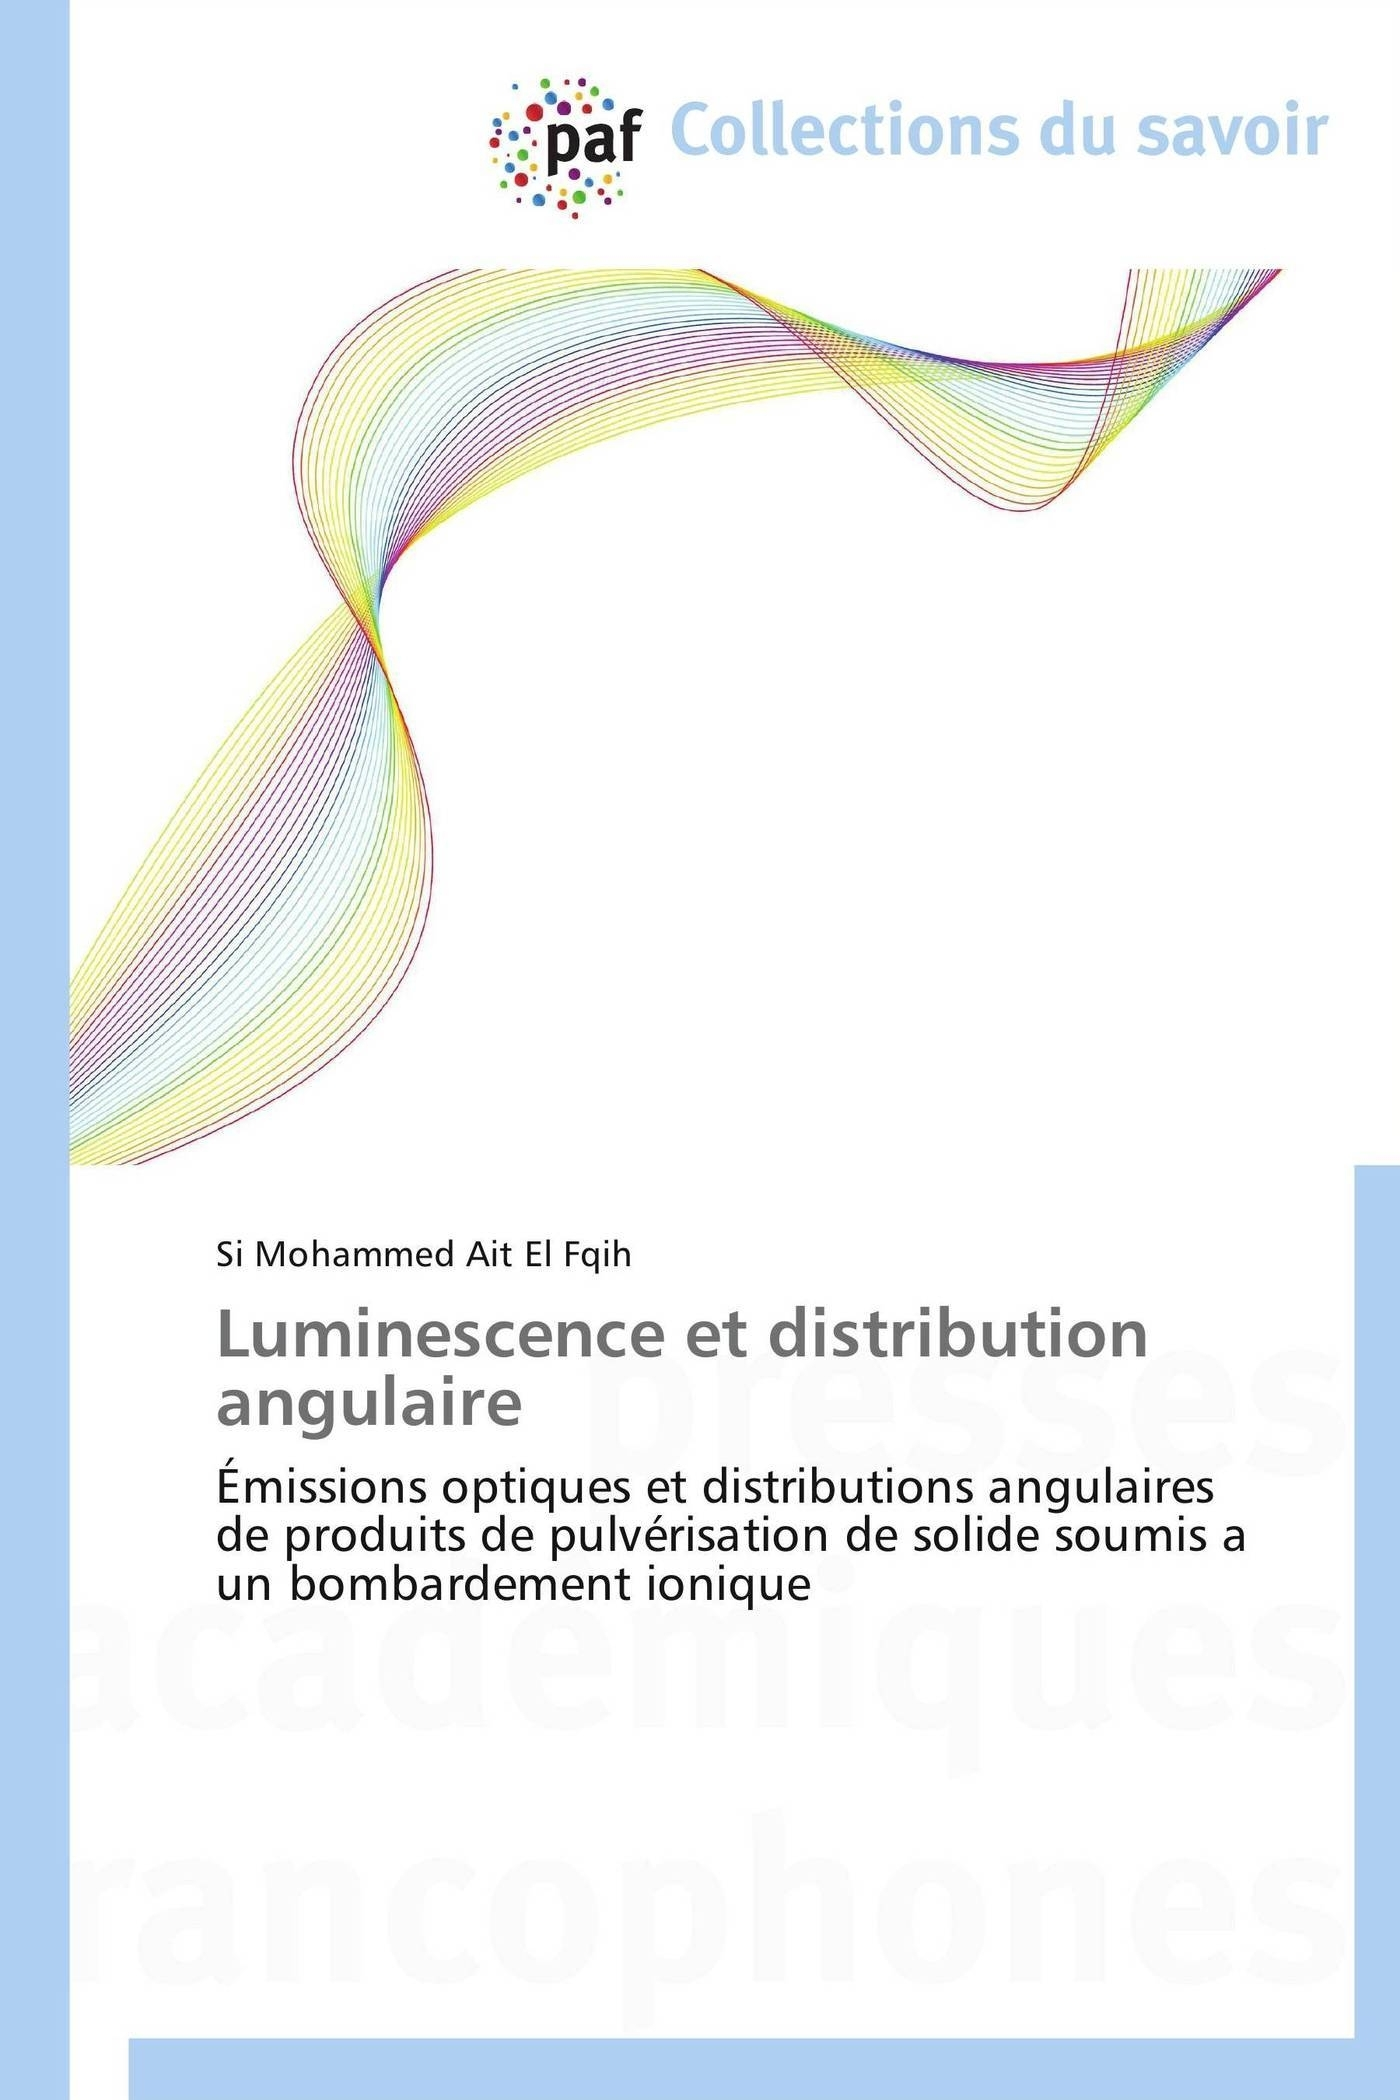 LUMINESCENCE ET DISTRIBUTION ANGULAIRE